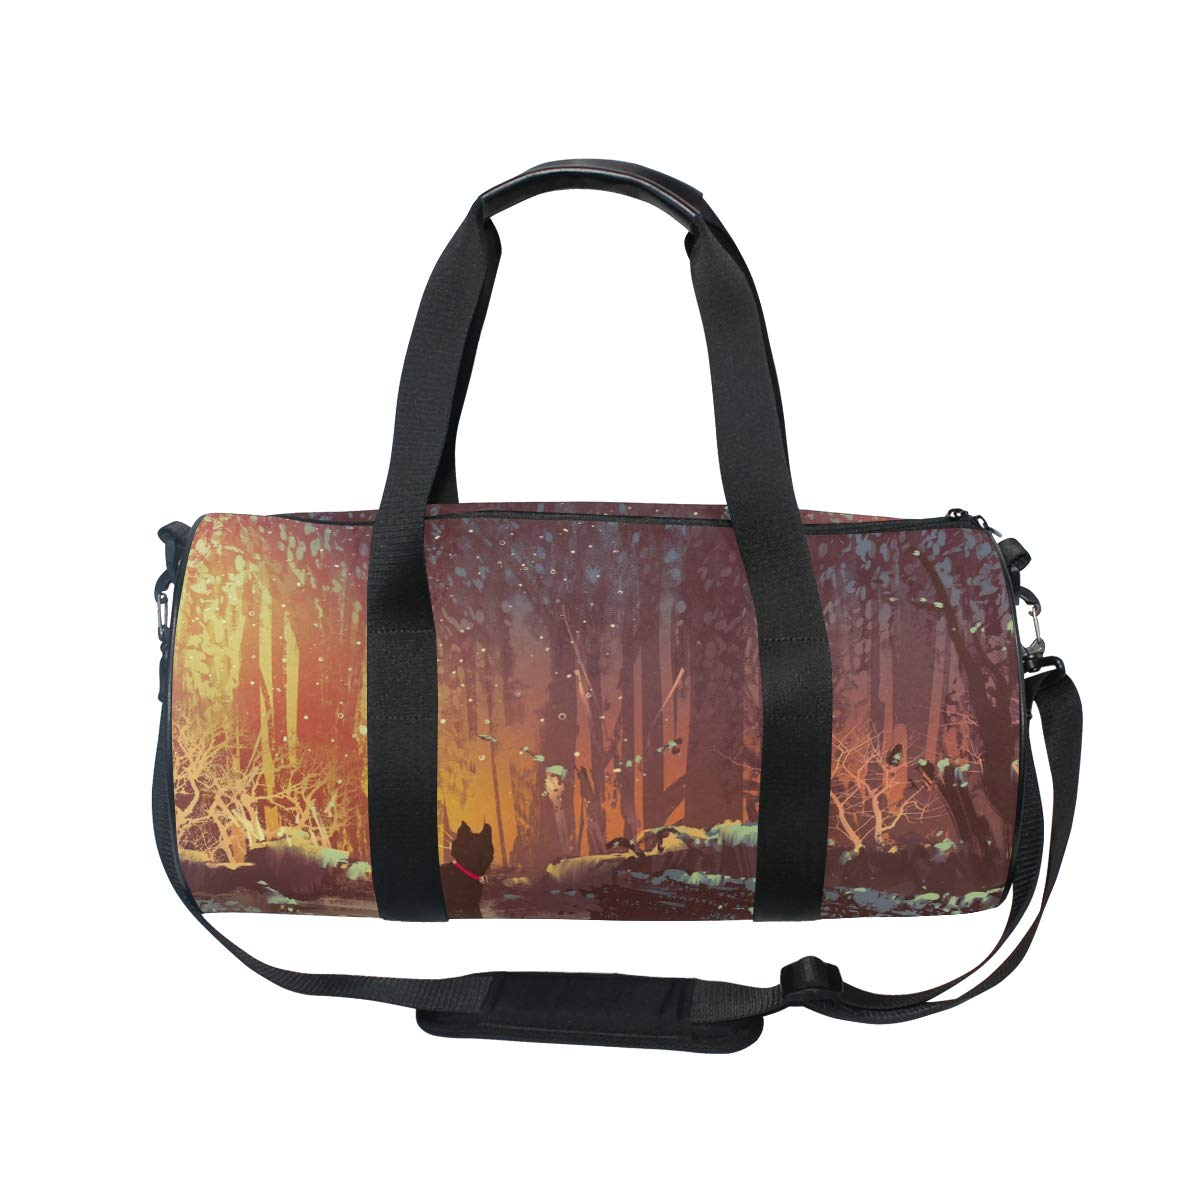 WIHVE Gym Duffel Bag Night Lost Cat In The Forest Sports Lightweight Canvas Travel Luggage Bag